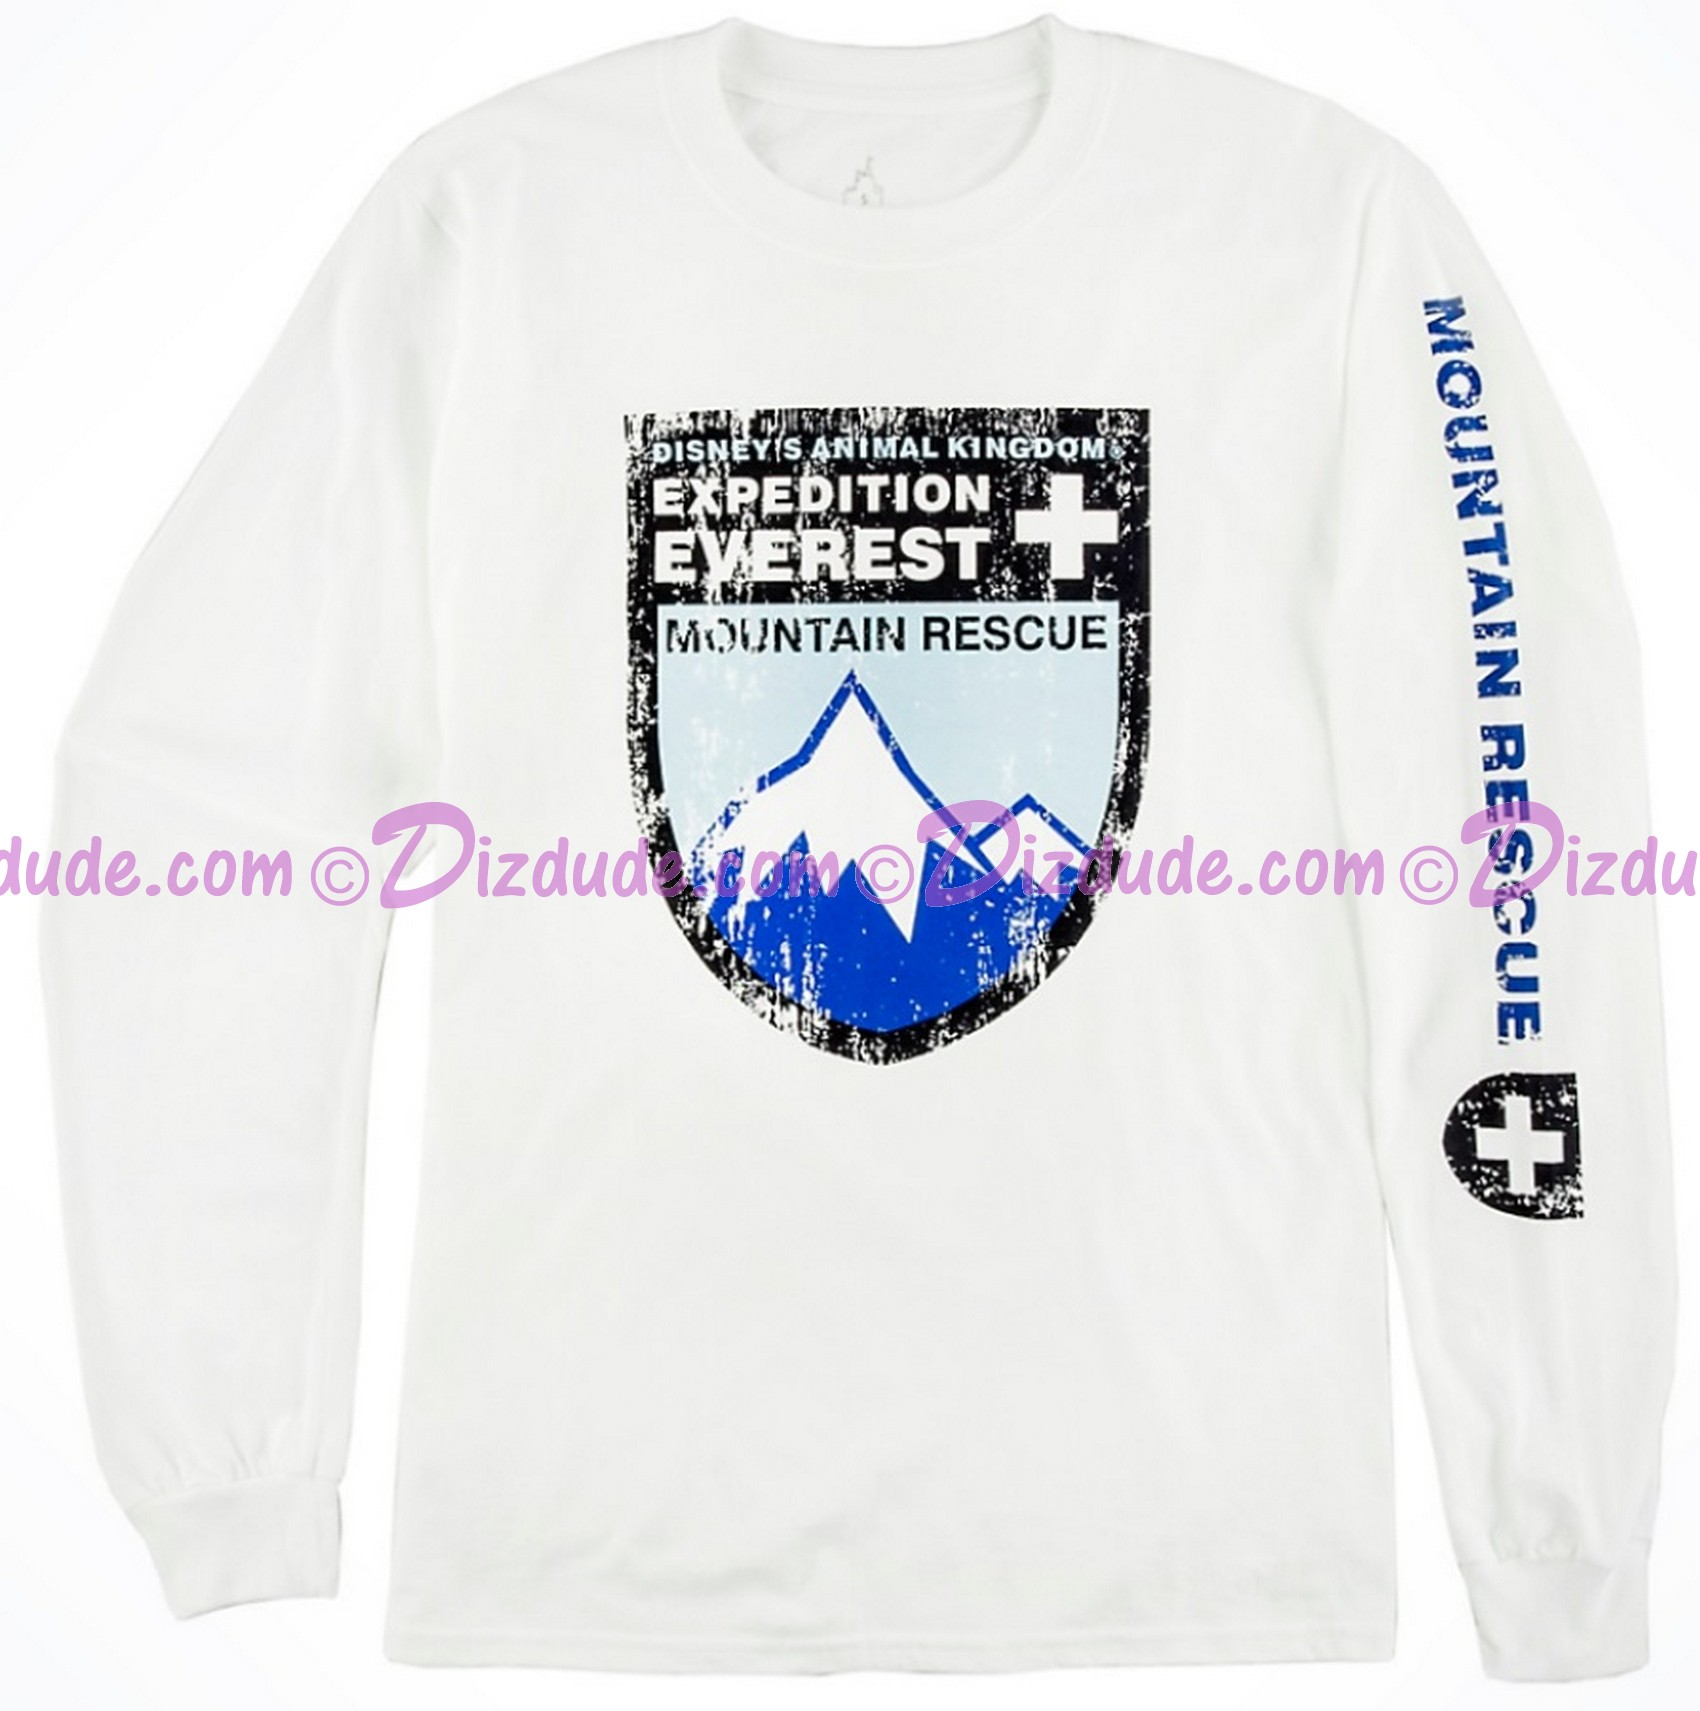 (SOLD OUT) Disney Animal Kingdoms Expedition Everest Mountain Rescue Long Sleeved Shirt